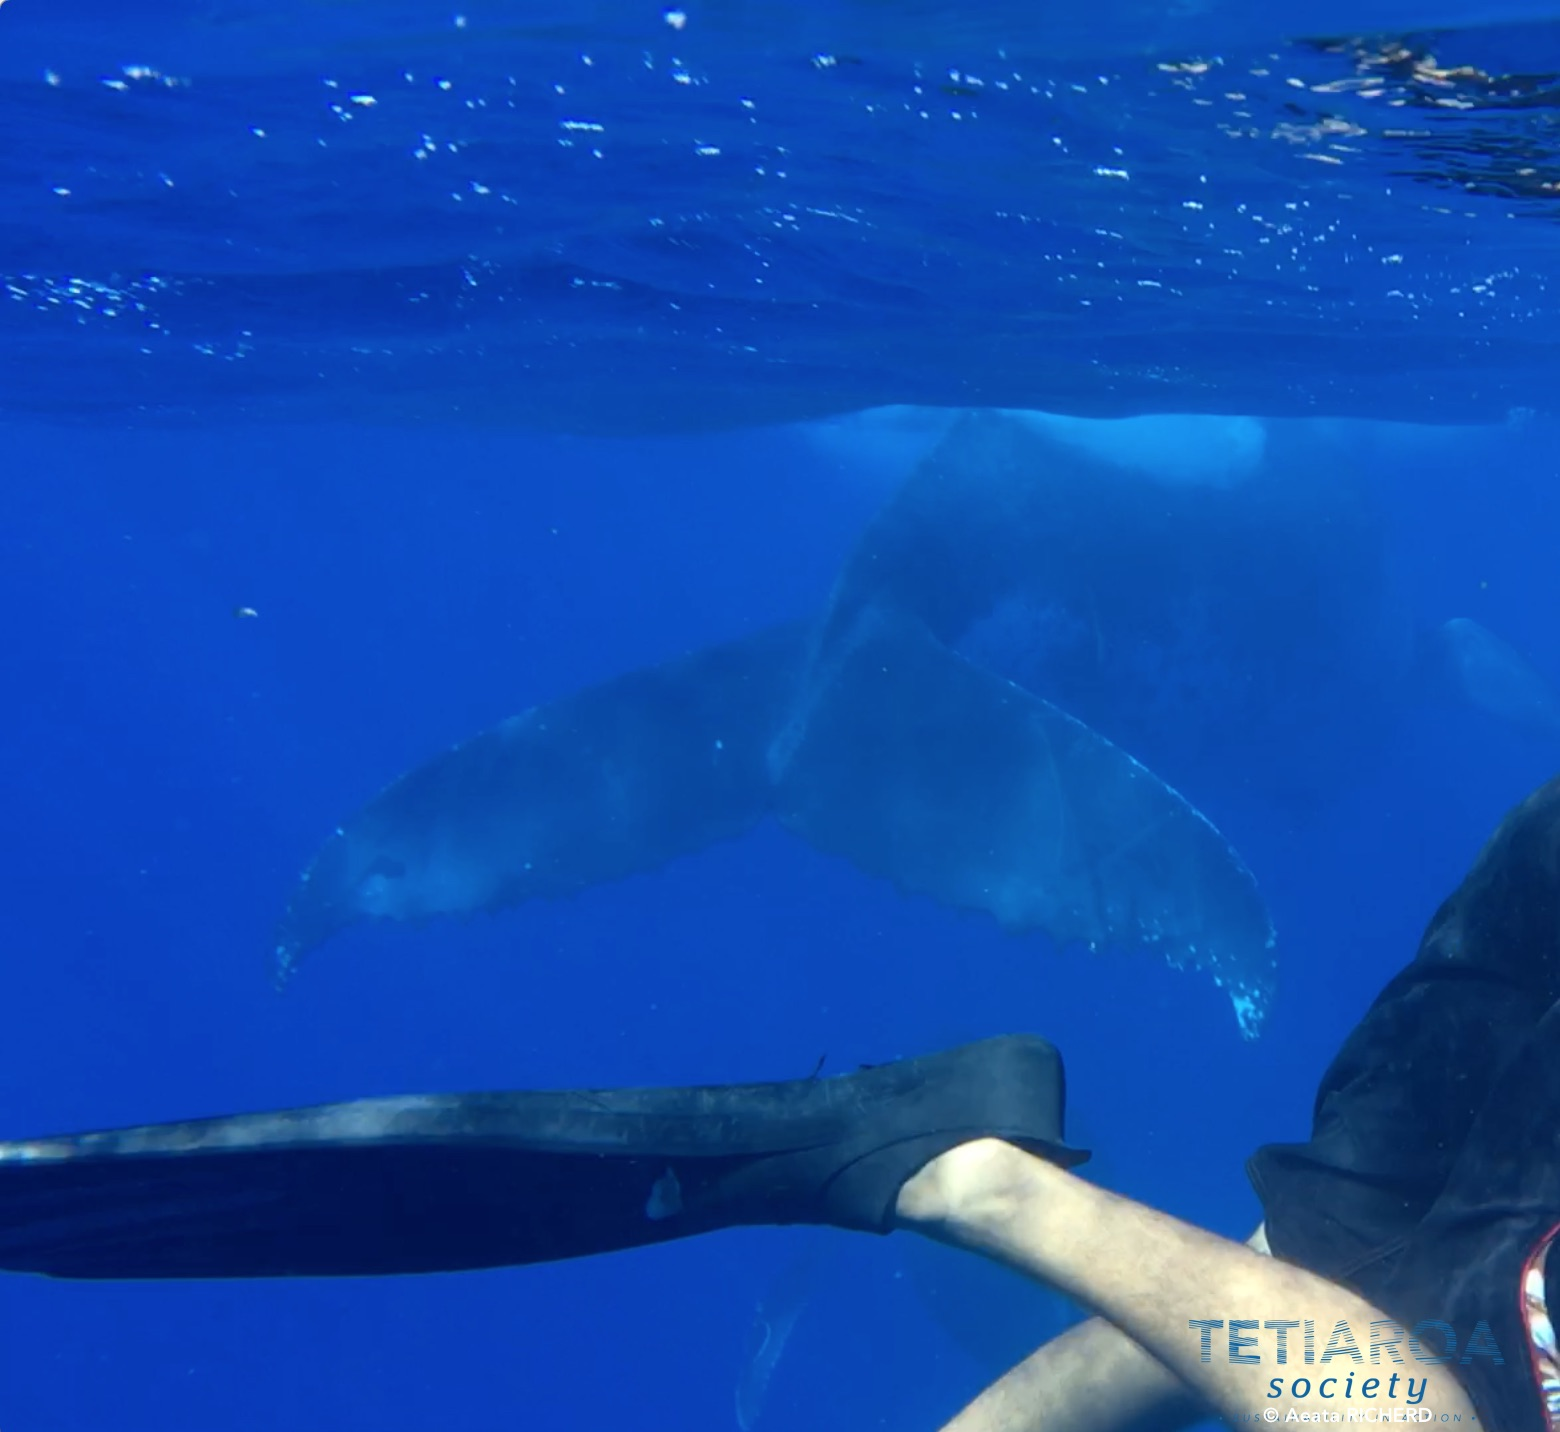 swimming with humpback whales off Tetiaroa